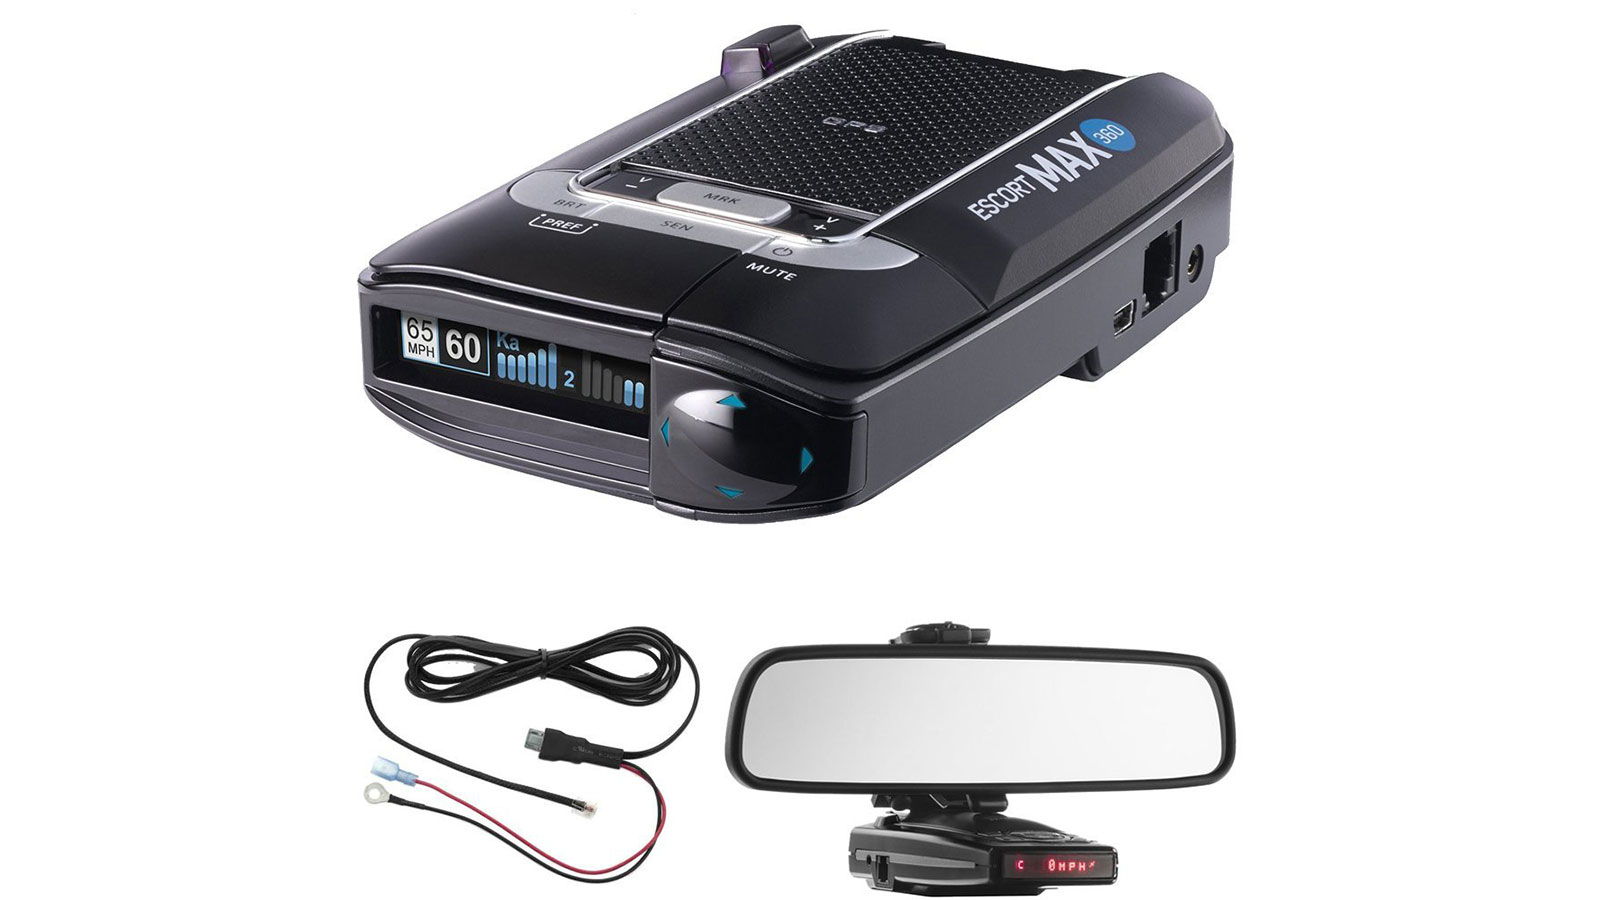 Escort Max 360 Radar and Laser Detector | gifts for men | gifts for drivers